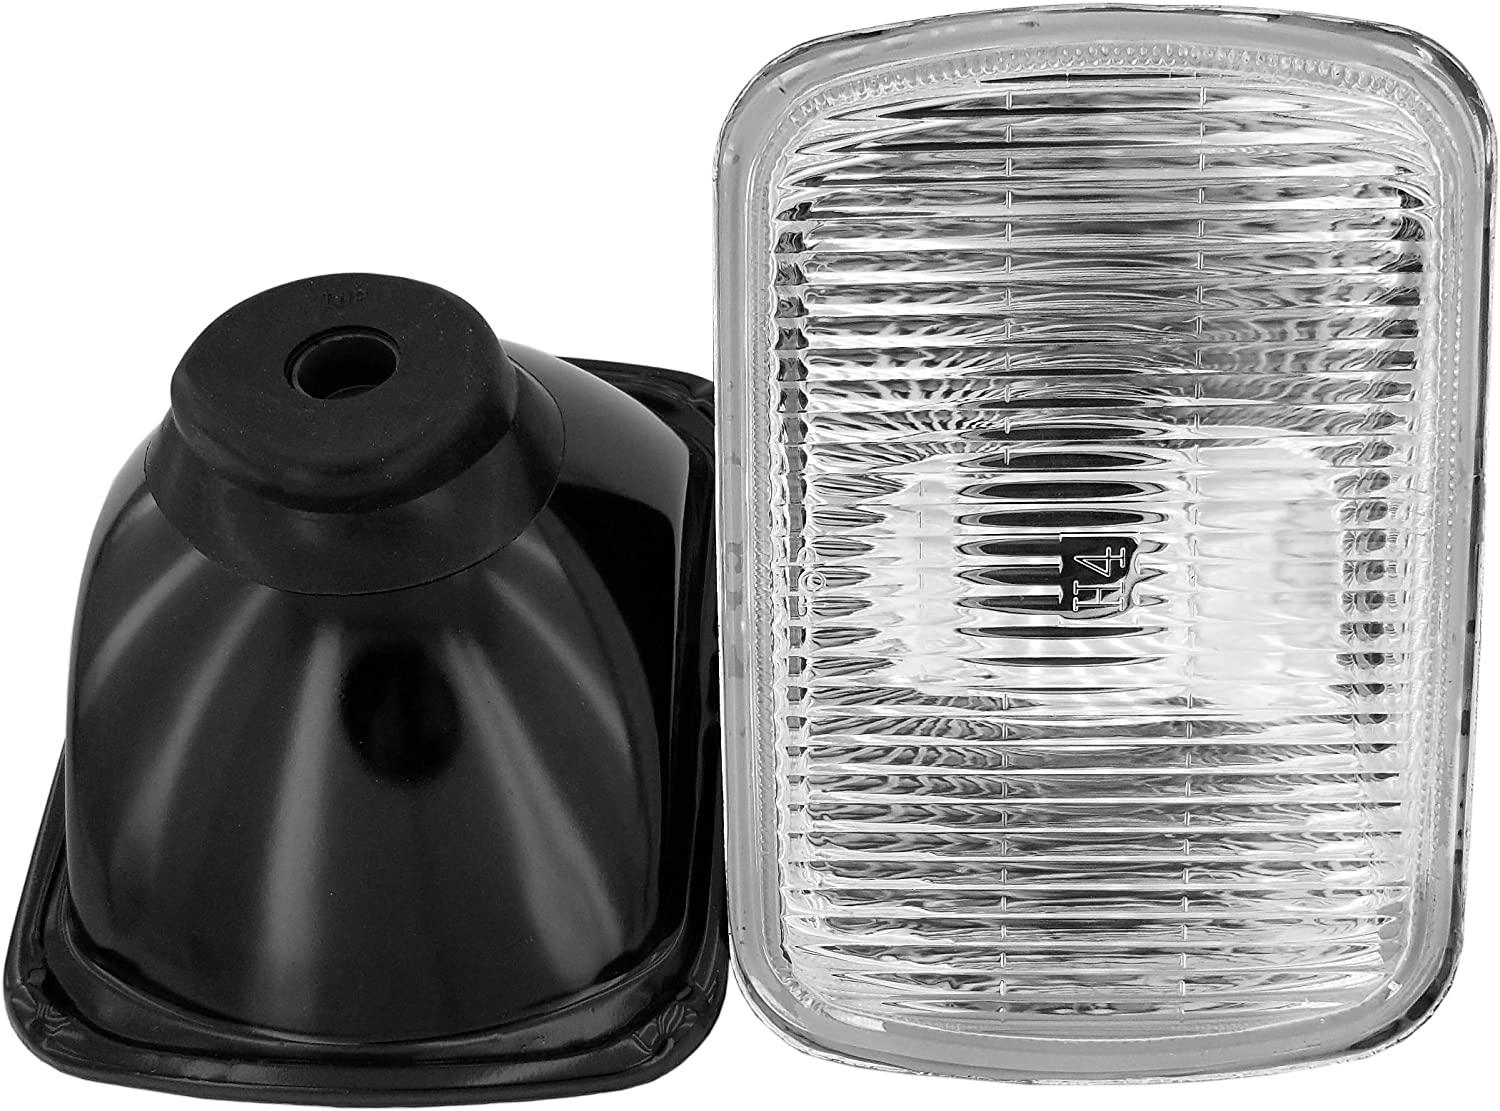 GS Power's OEM style 7 x 6 inch Glass Lens H4 HID LED Halogen High Low Beam Headlight Lamp Conversion Replacement Kit (2 pcs) | Lights not included | Also available in 4 x 6